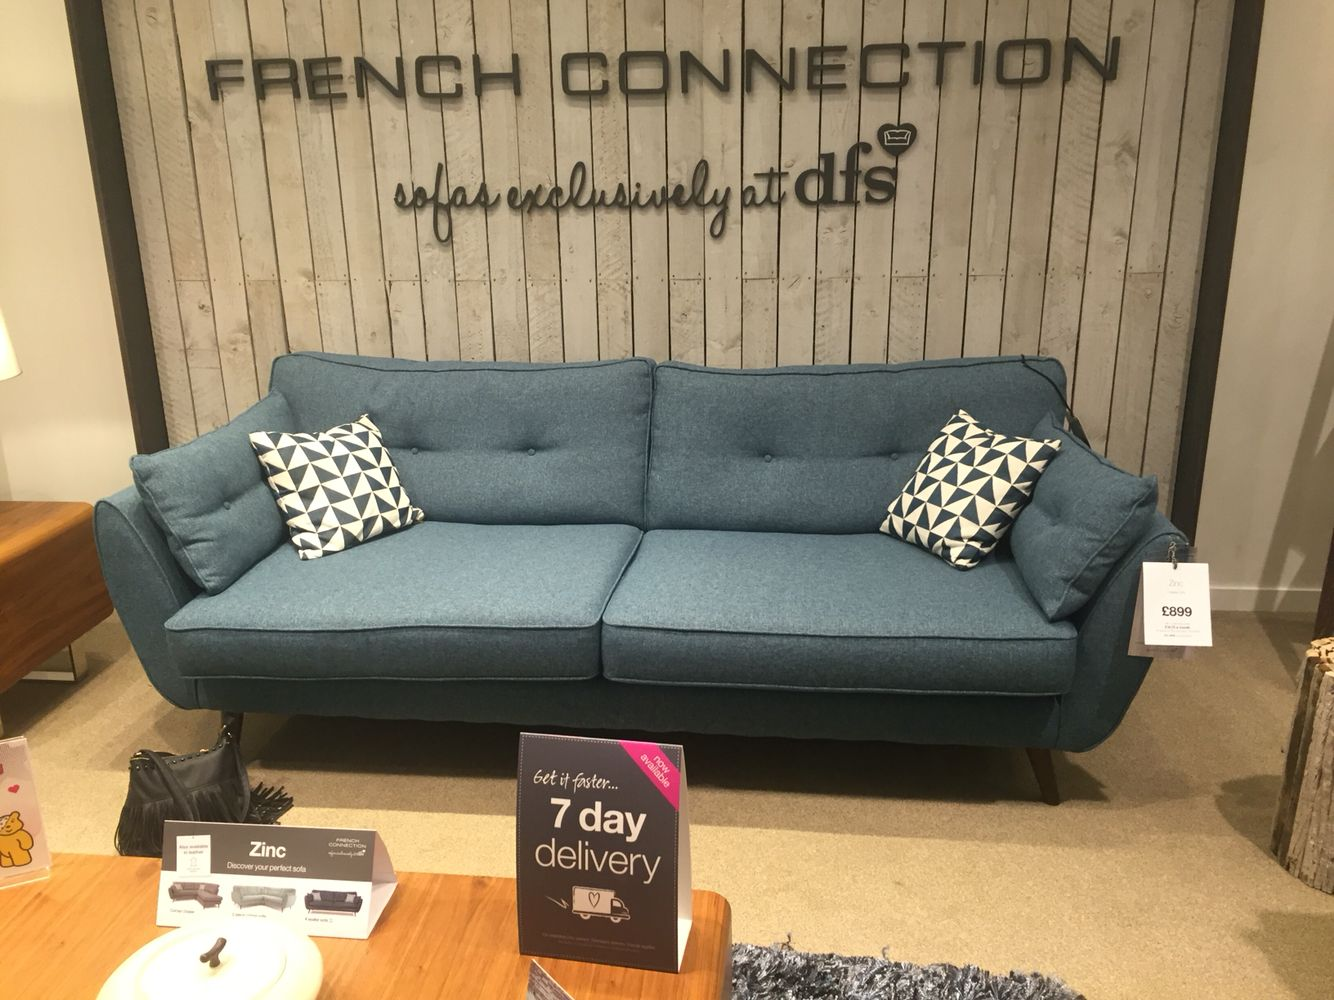 french connection sofa dfs nice in grey too yes that 39 s. Black Bedroom Furniture Sets. Home Design Ideas